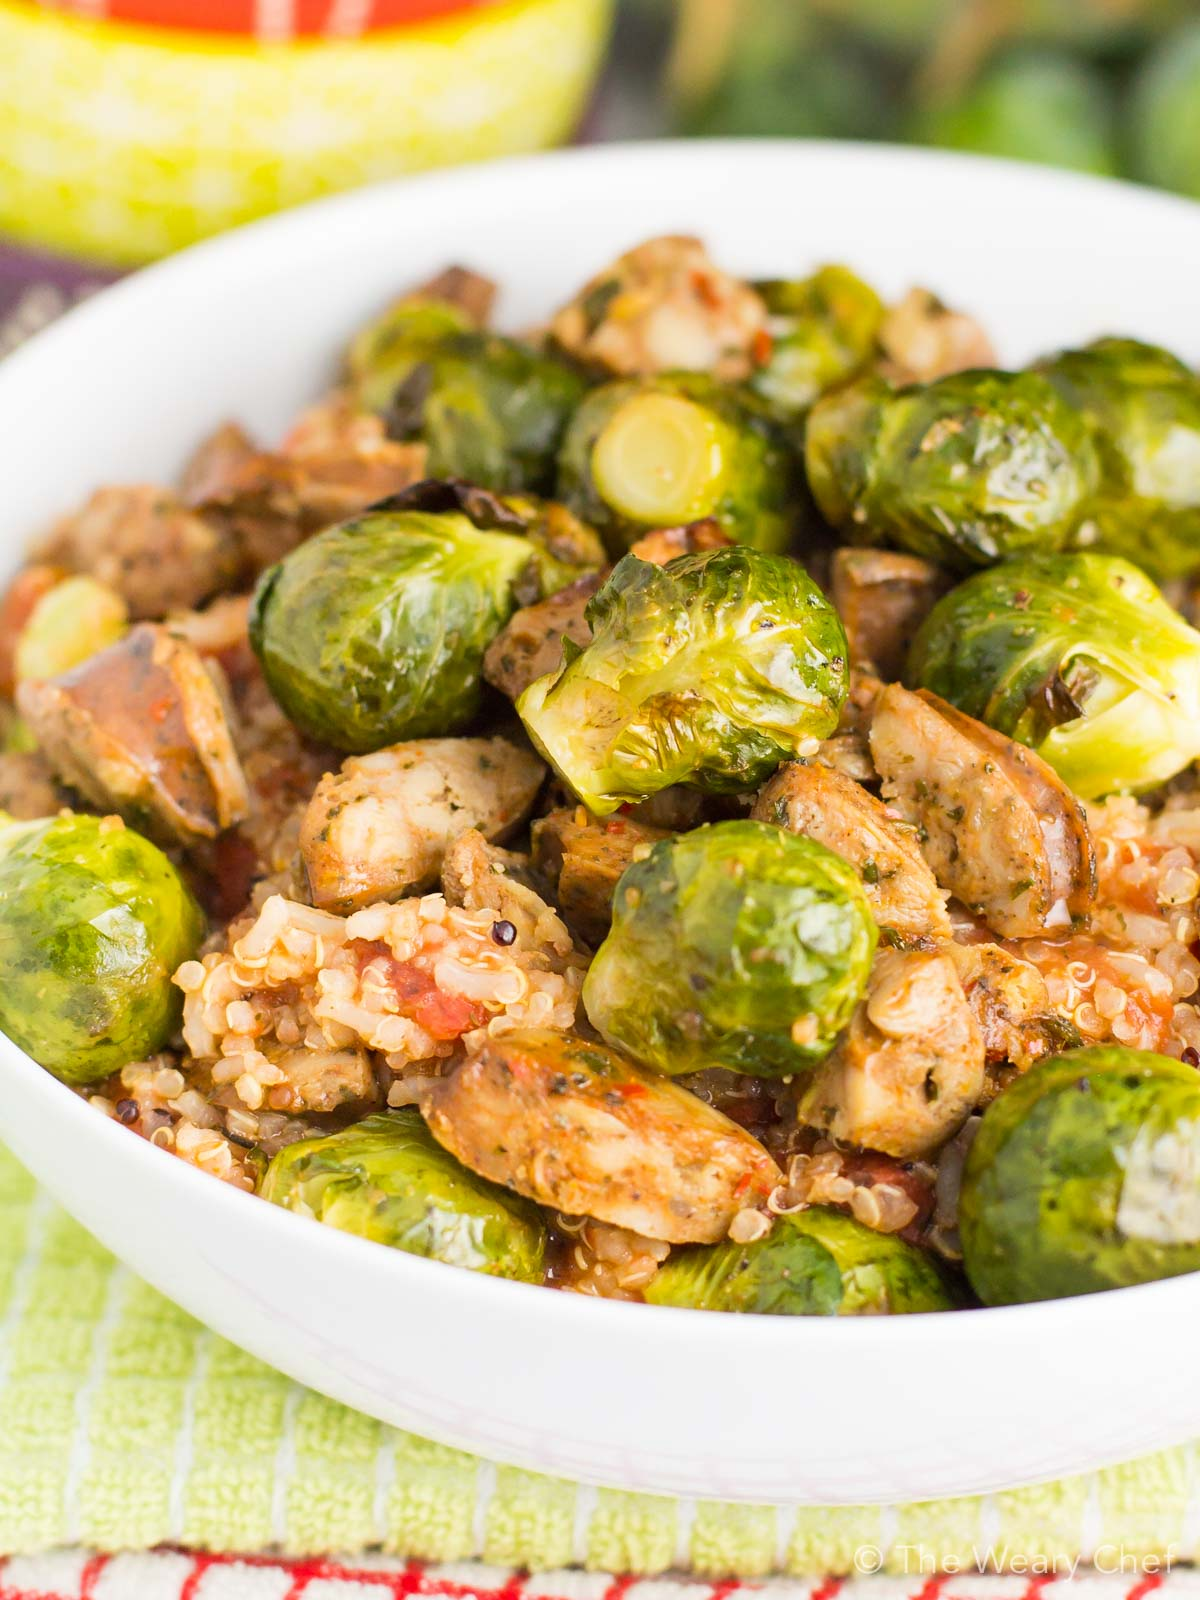 Dig into this fast, delicious, healthy quinoa recipe for dinner! It's loaded with tomatoes, sausage, and brussels sprouts to fill you up in a wholesome way.